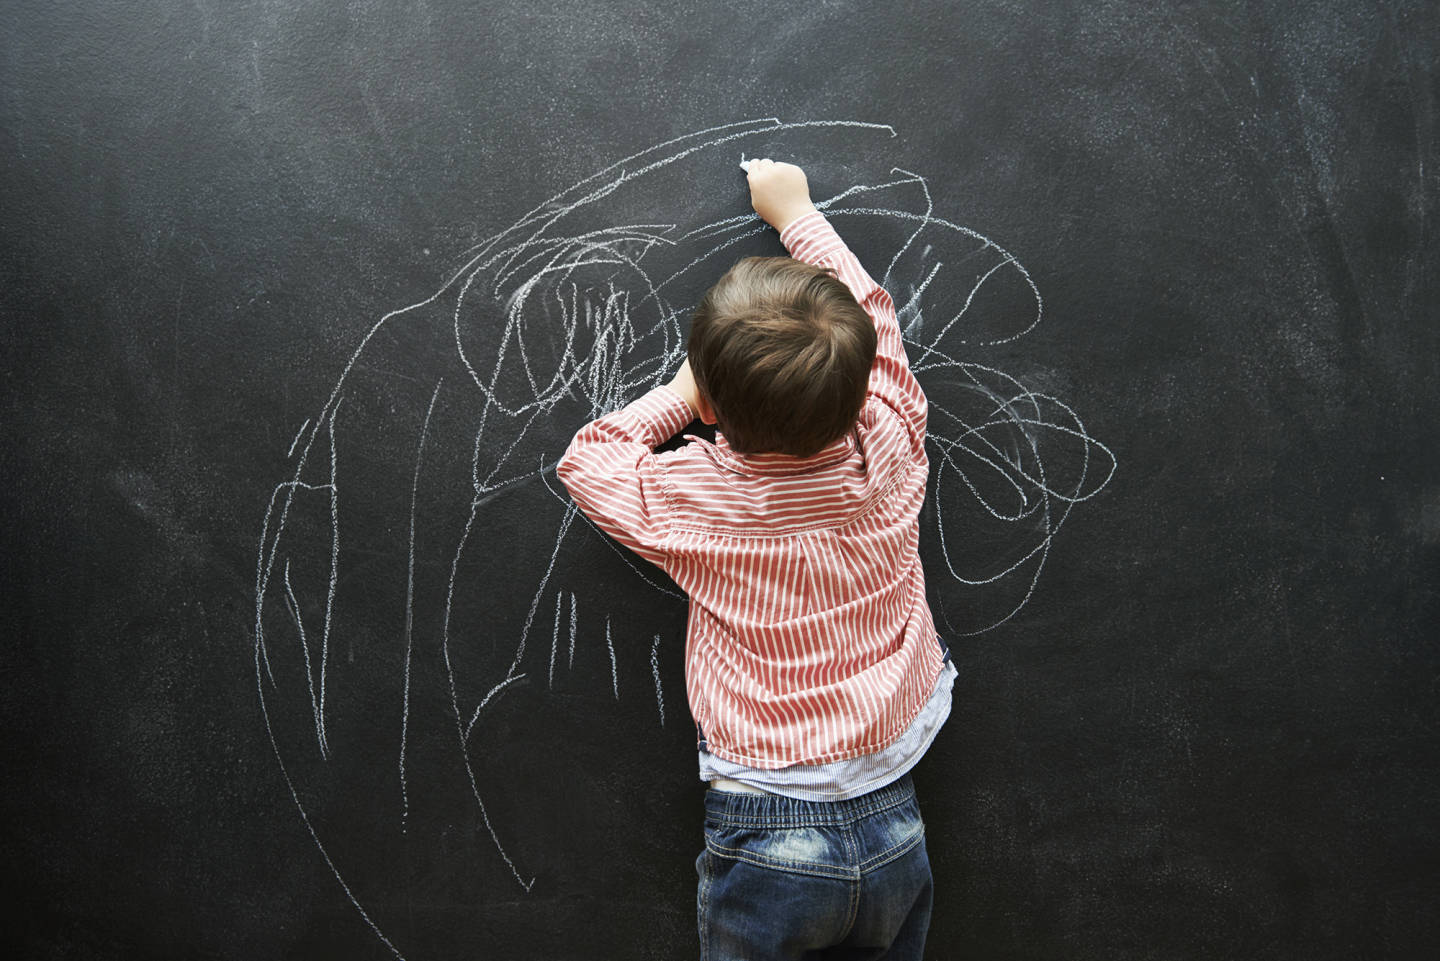 ADHD Diagnoses? Why the Youngest Kids in Class Are Most Affected